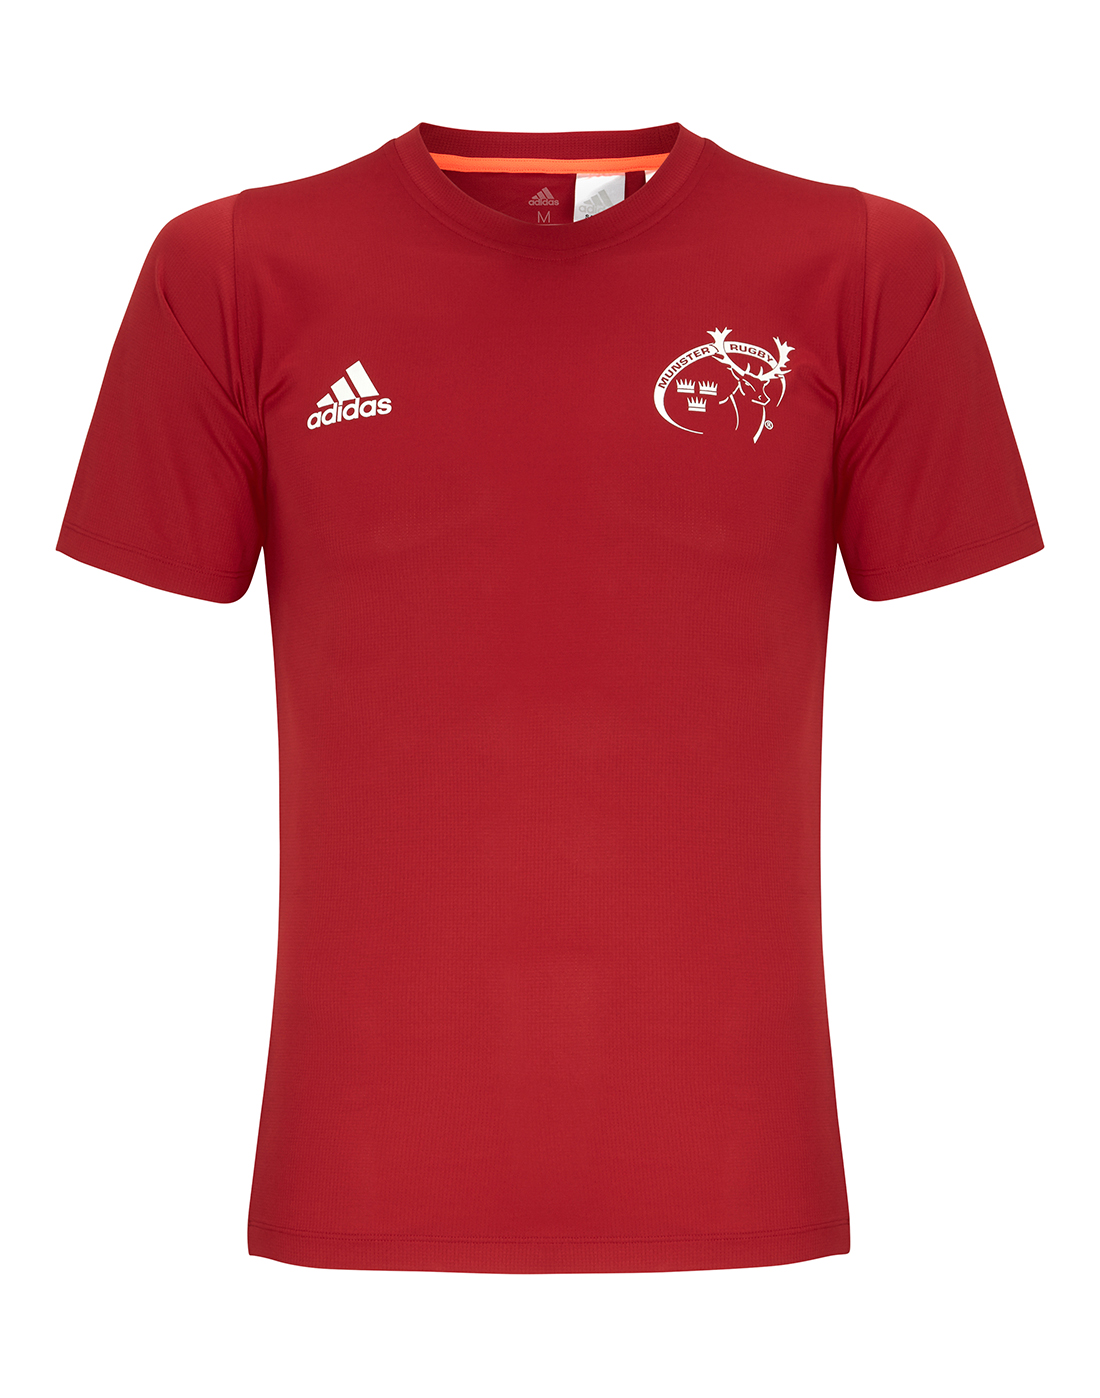 7368e0ba3 Red Munster adidas Performance T-Shirt 19/20   Life Style Sports